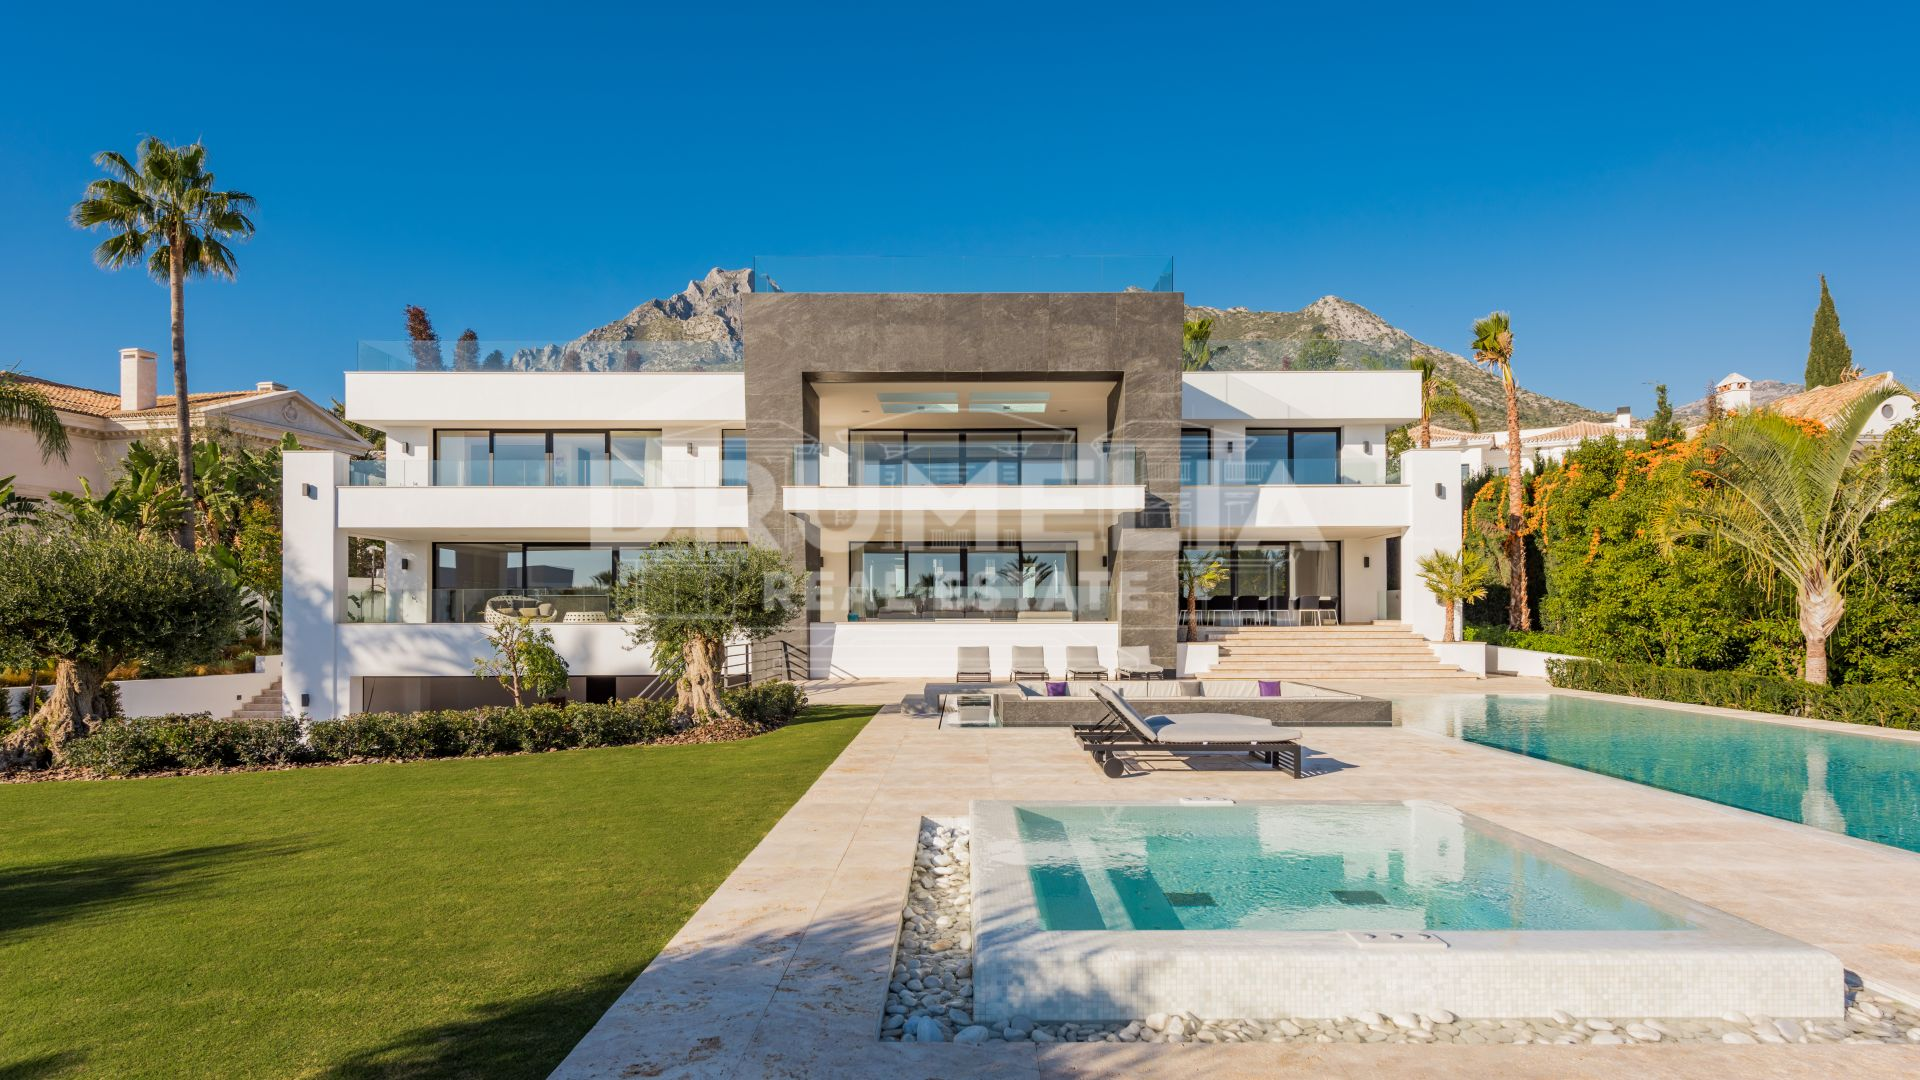 Marbella Golden Mile, New-build Unique Luxury Contemporary Villa, Sierra Blanca, Golden Mile, Marbella